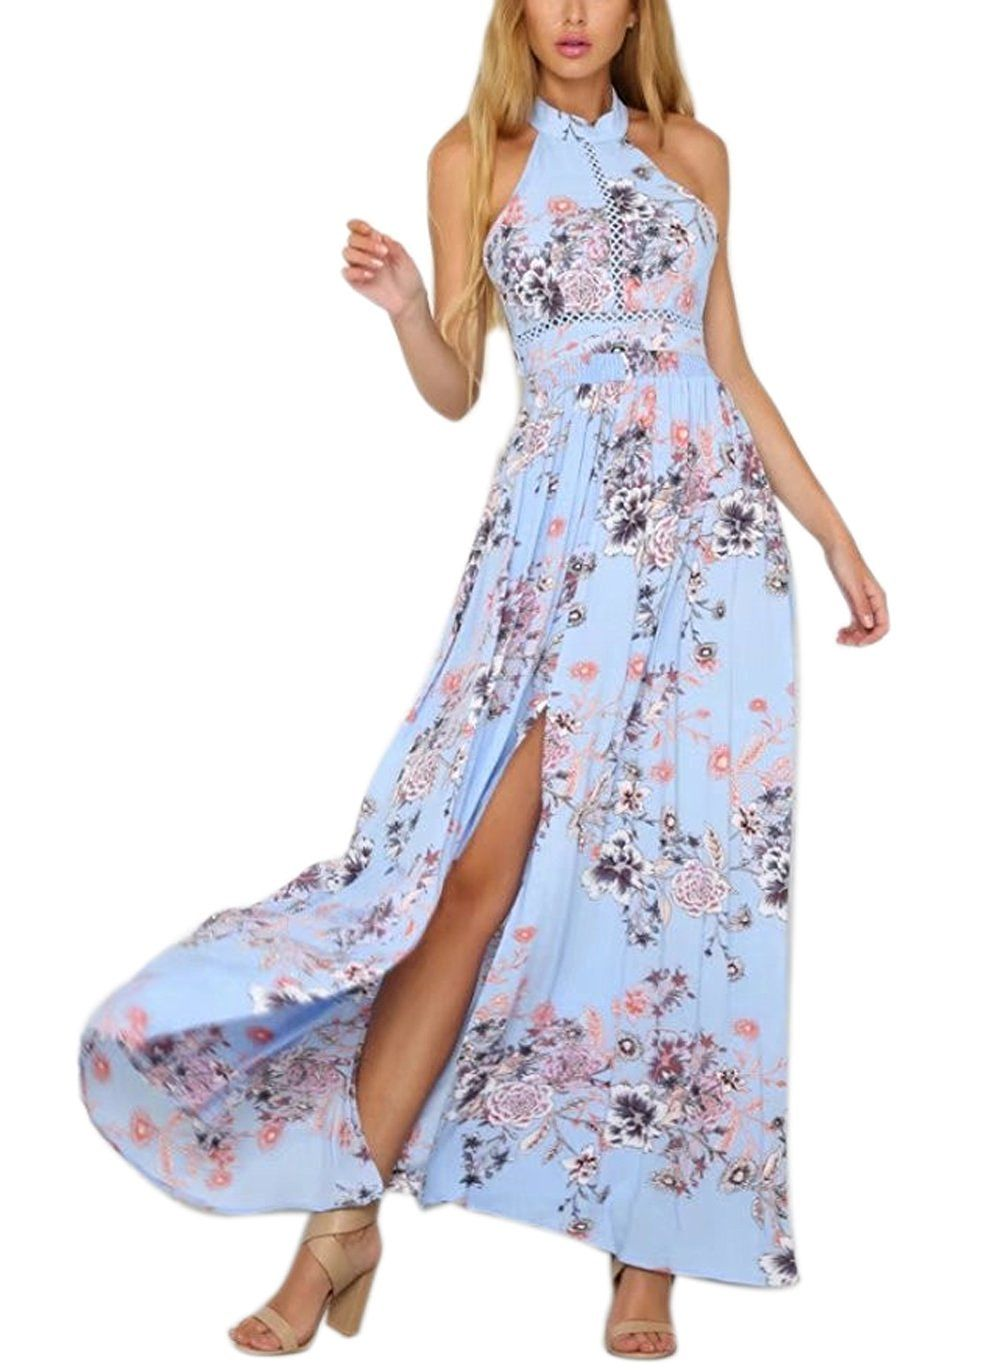 Fflmyuhuliu womenus sexy split floral offshoulder beach party maxi